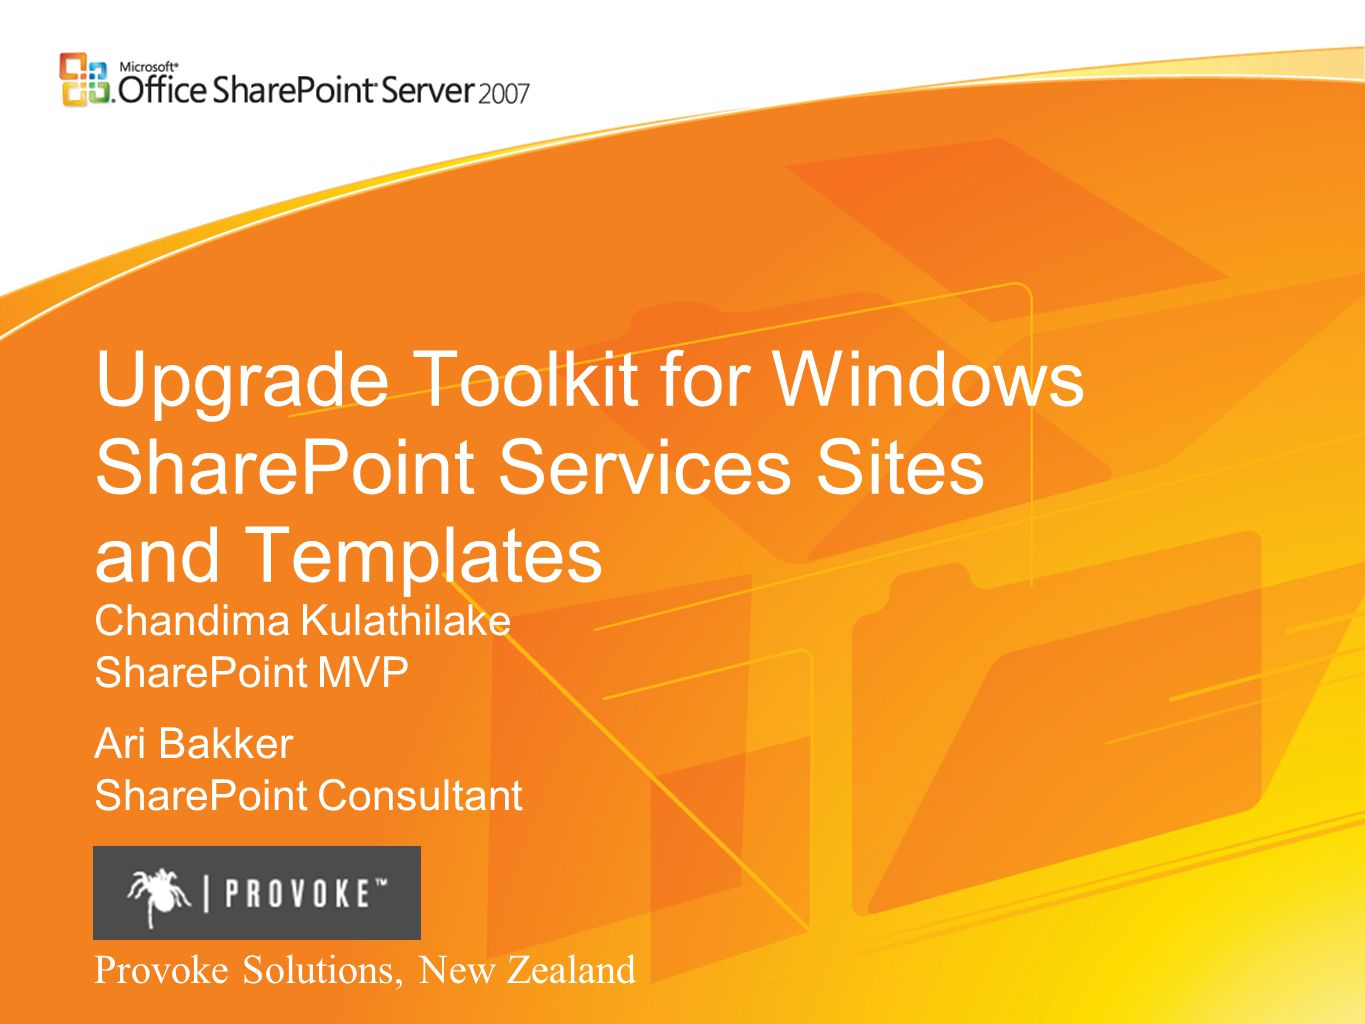 Upgrade Toolkit for Windows SharePoint Services Sites and Templates Chandima Kulathilake SharePoint MVP Ari Bakker SharePoint Consultant Provoke Solutions, New Zealand